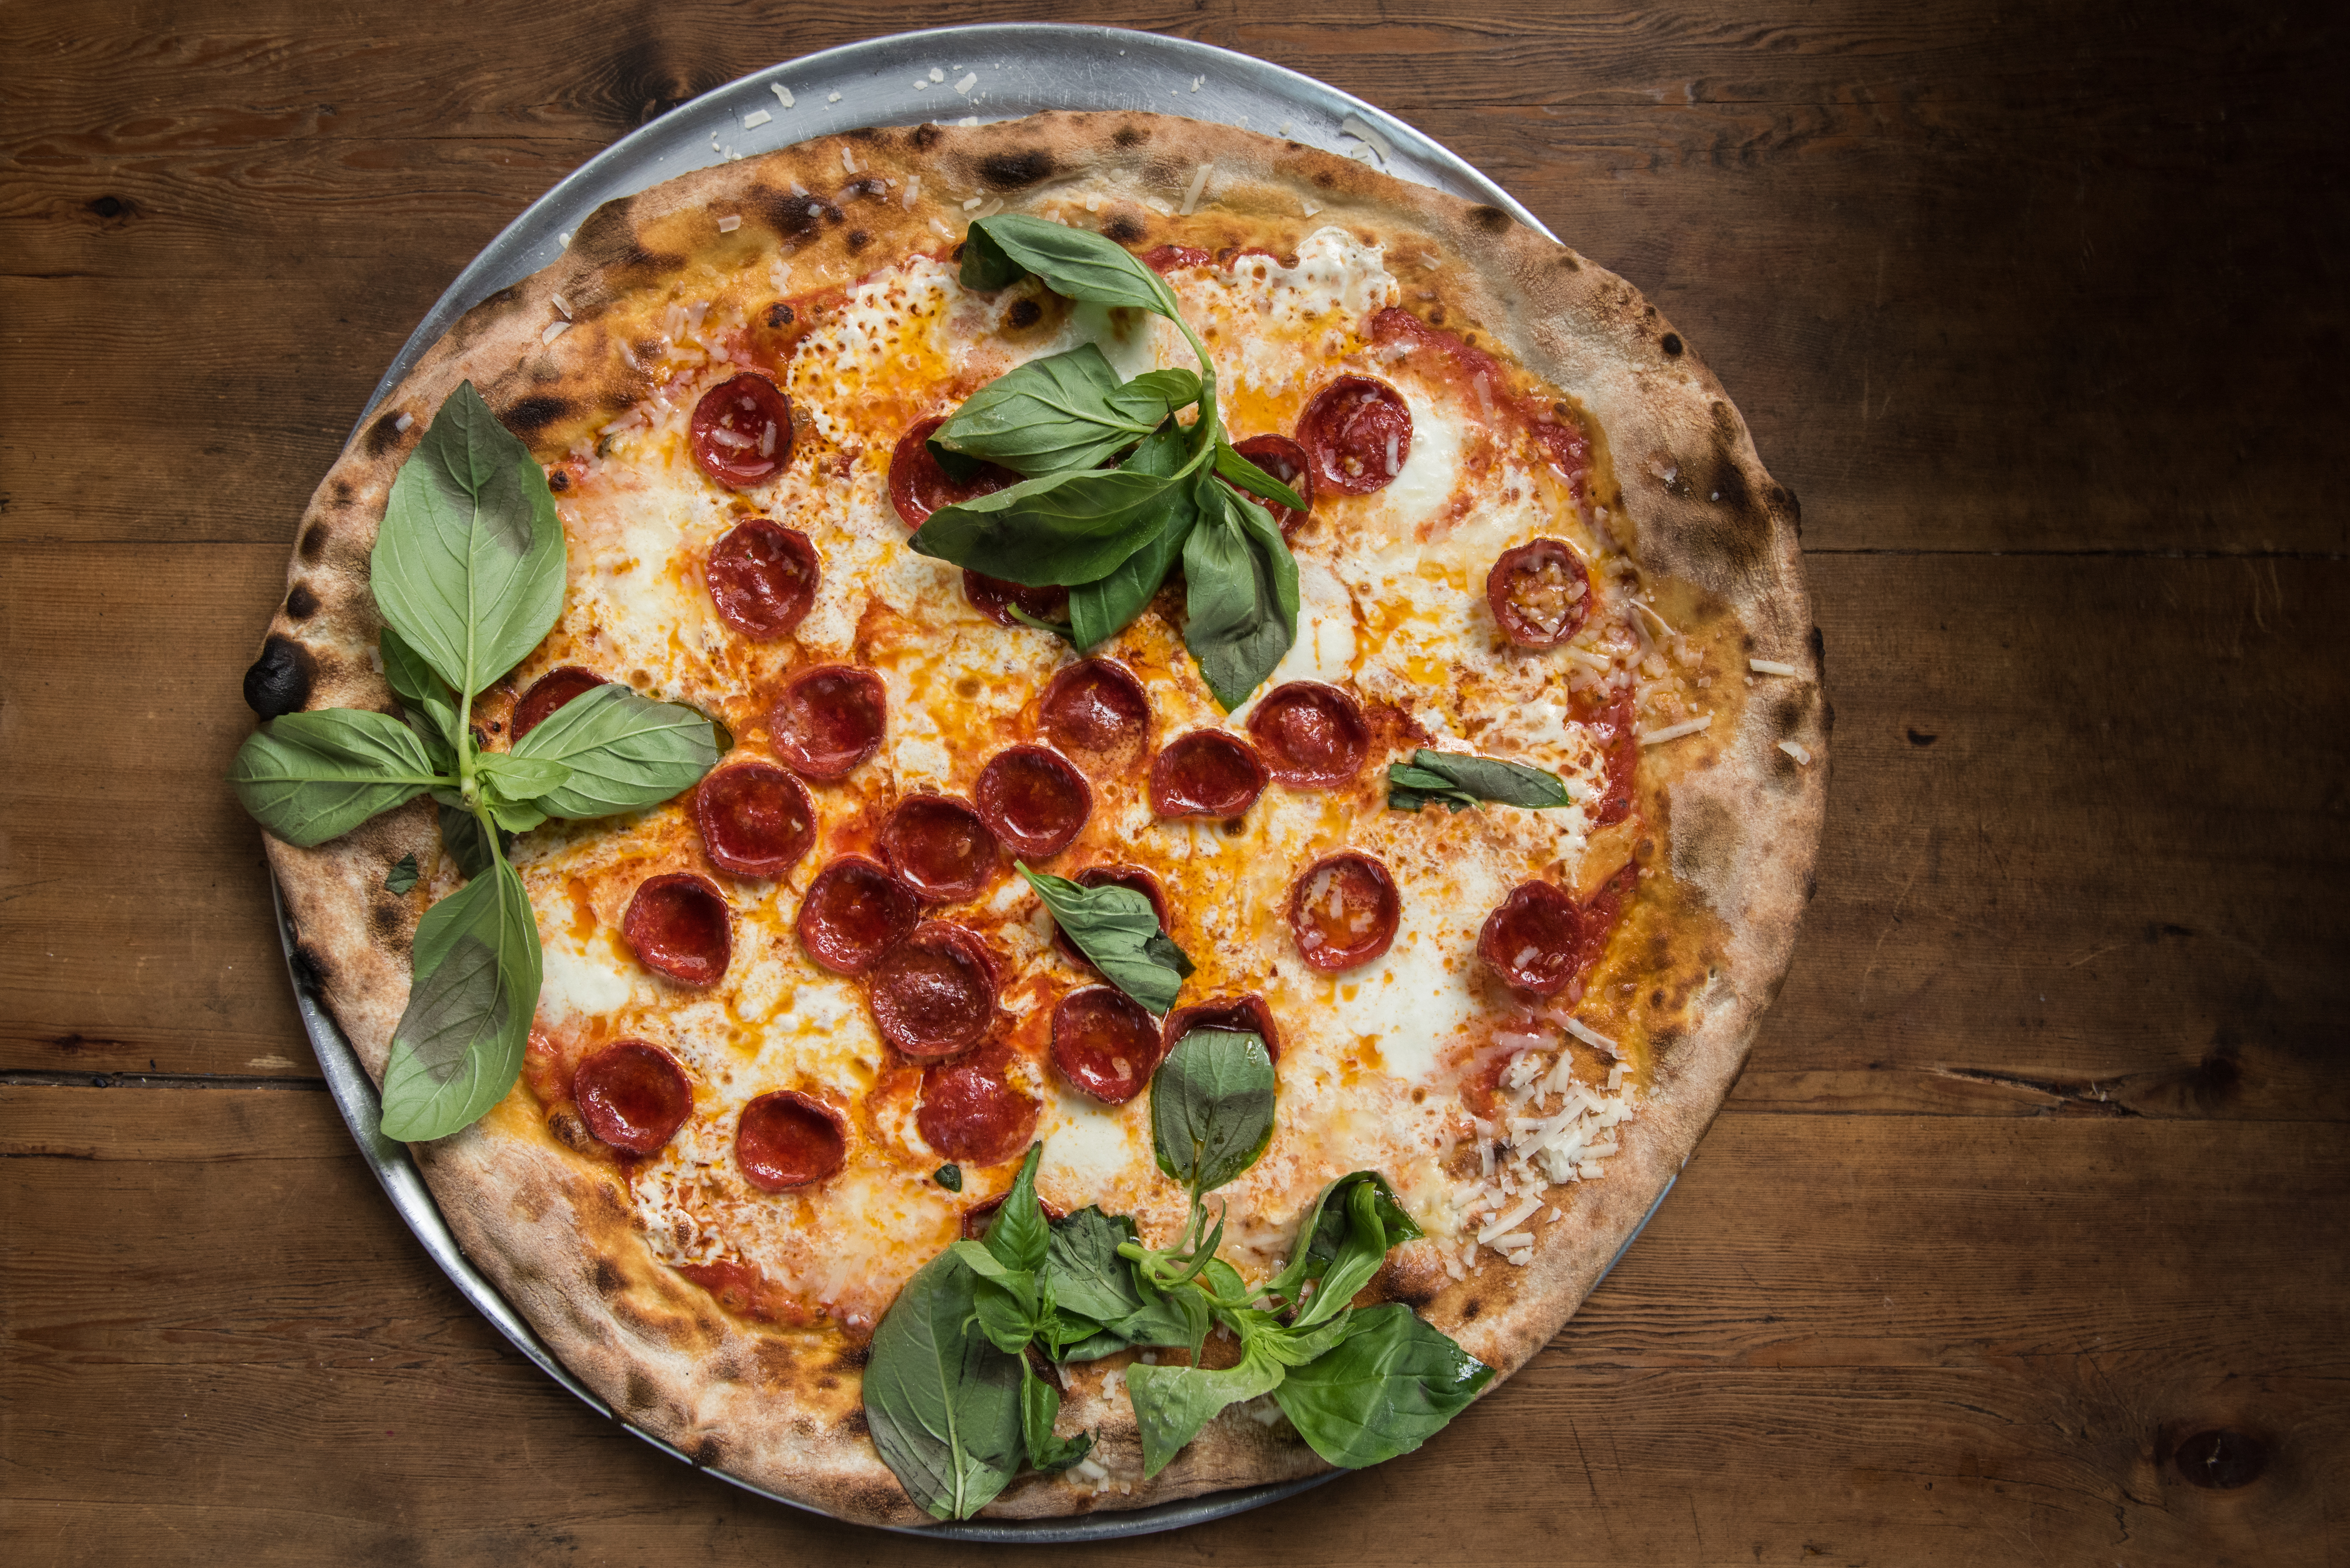 The 20 Best Pizza Places In NYC - New York - The Infatuation